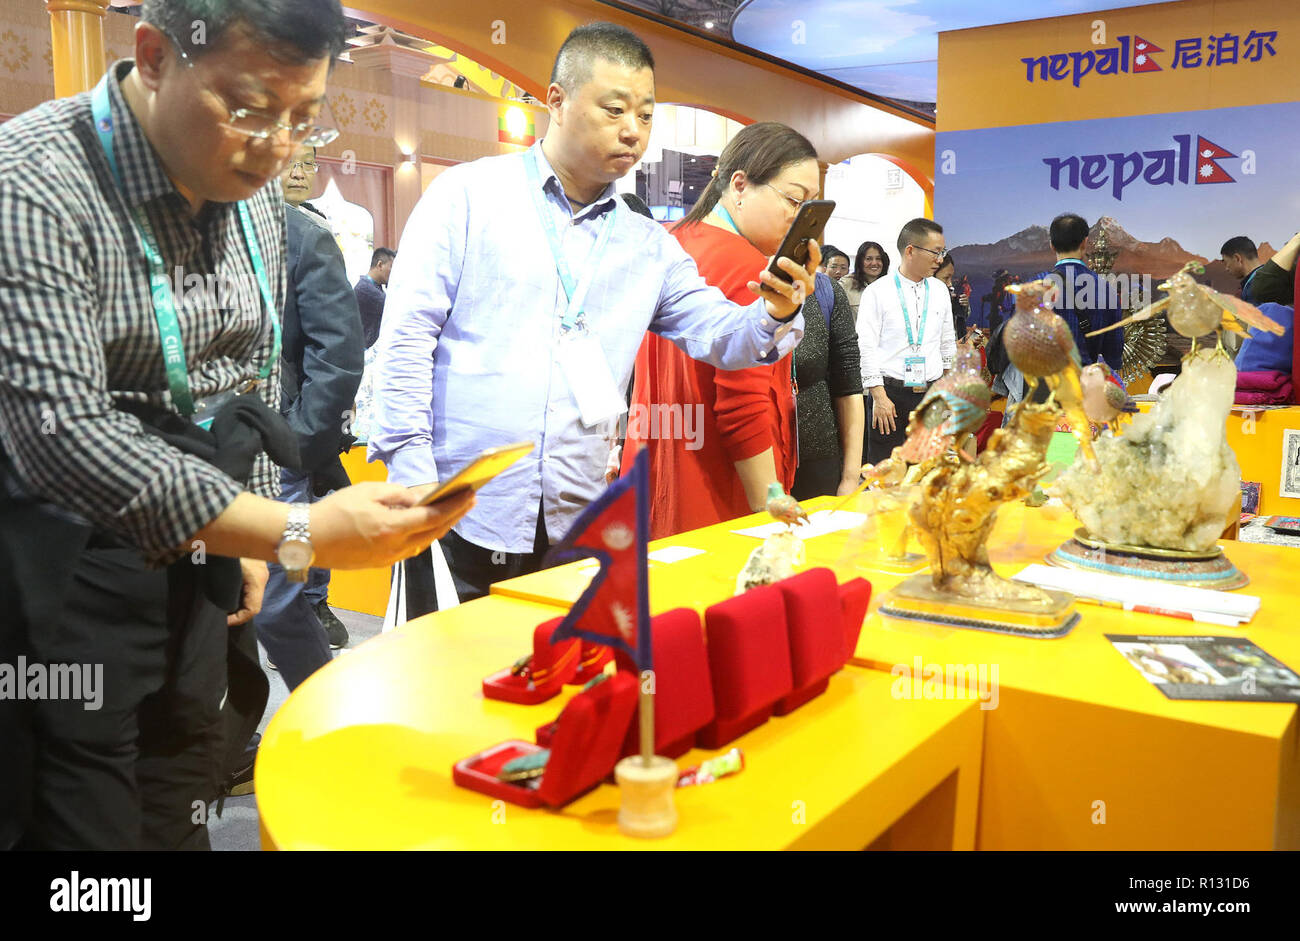 Shanghai, China  7th Nov, 2018  People visit the booth of Nepal at